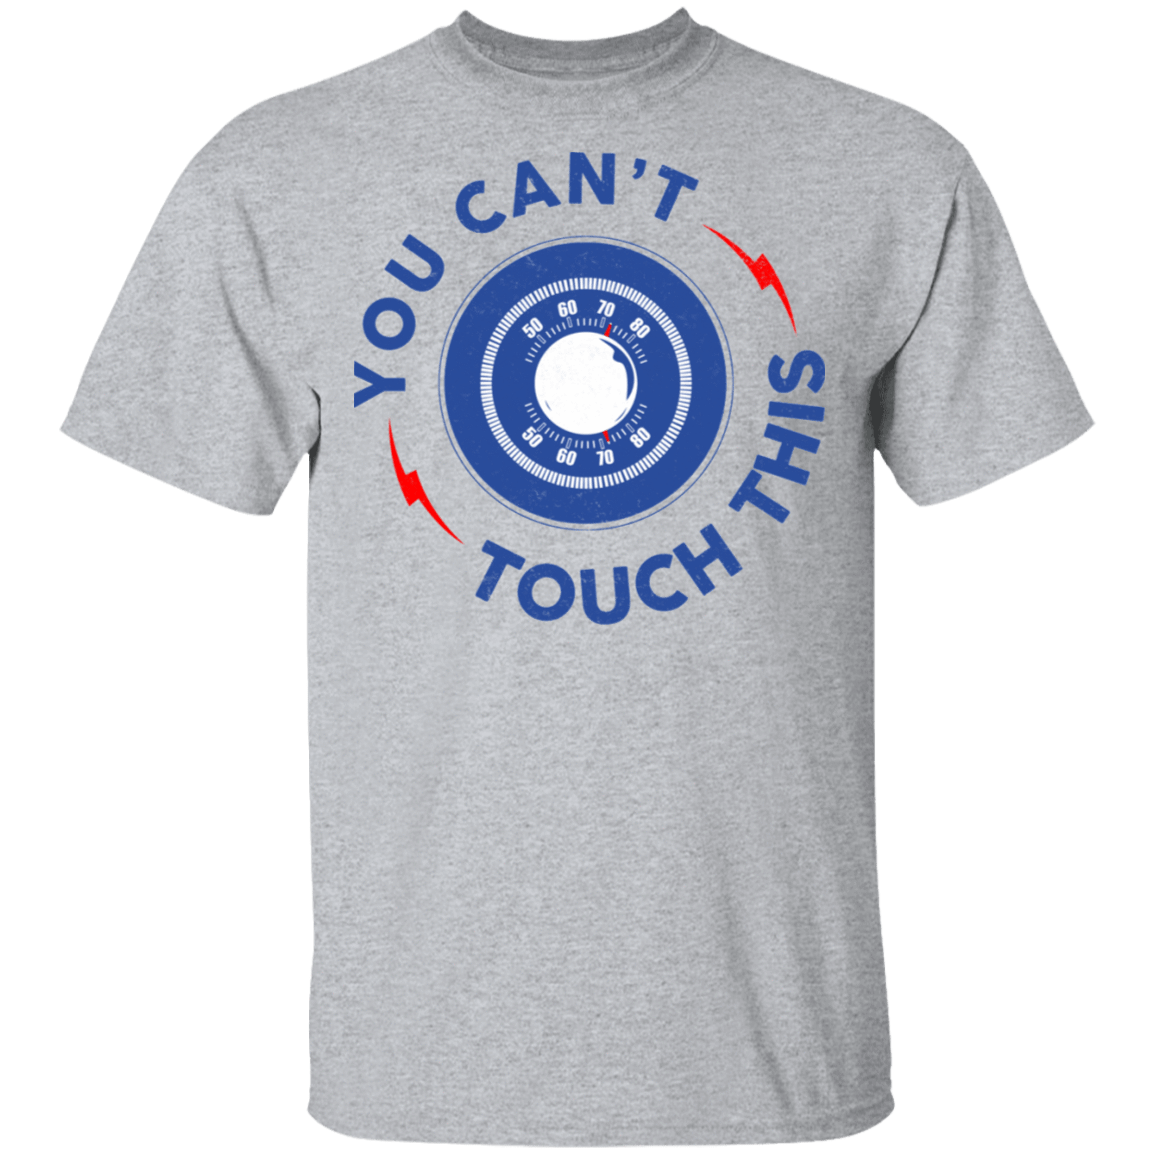 You Can't Touch This T-Shirts, Hoodies, Tank 22-115-79999090-254 - Tee Ript